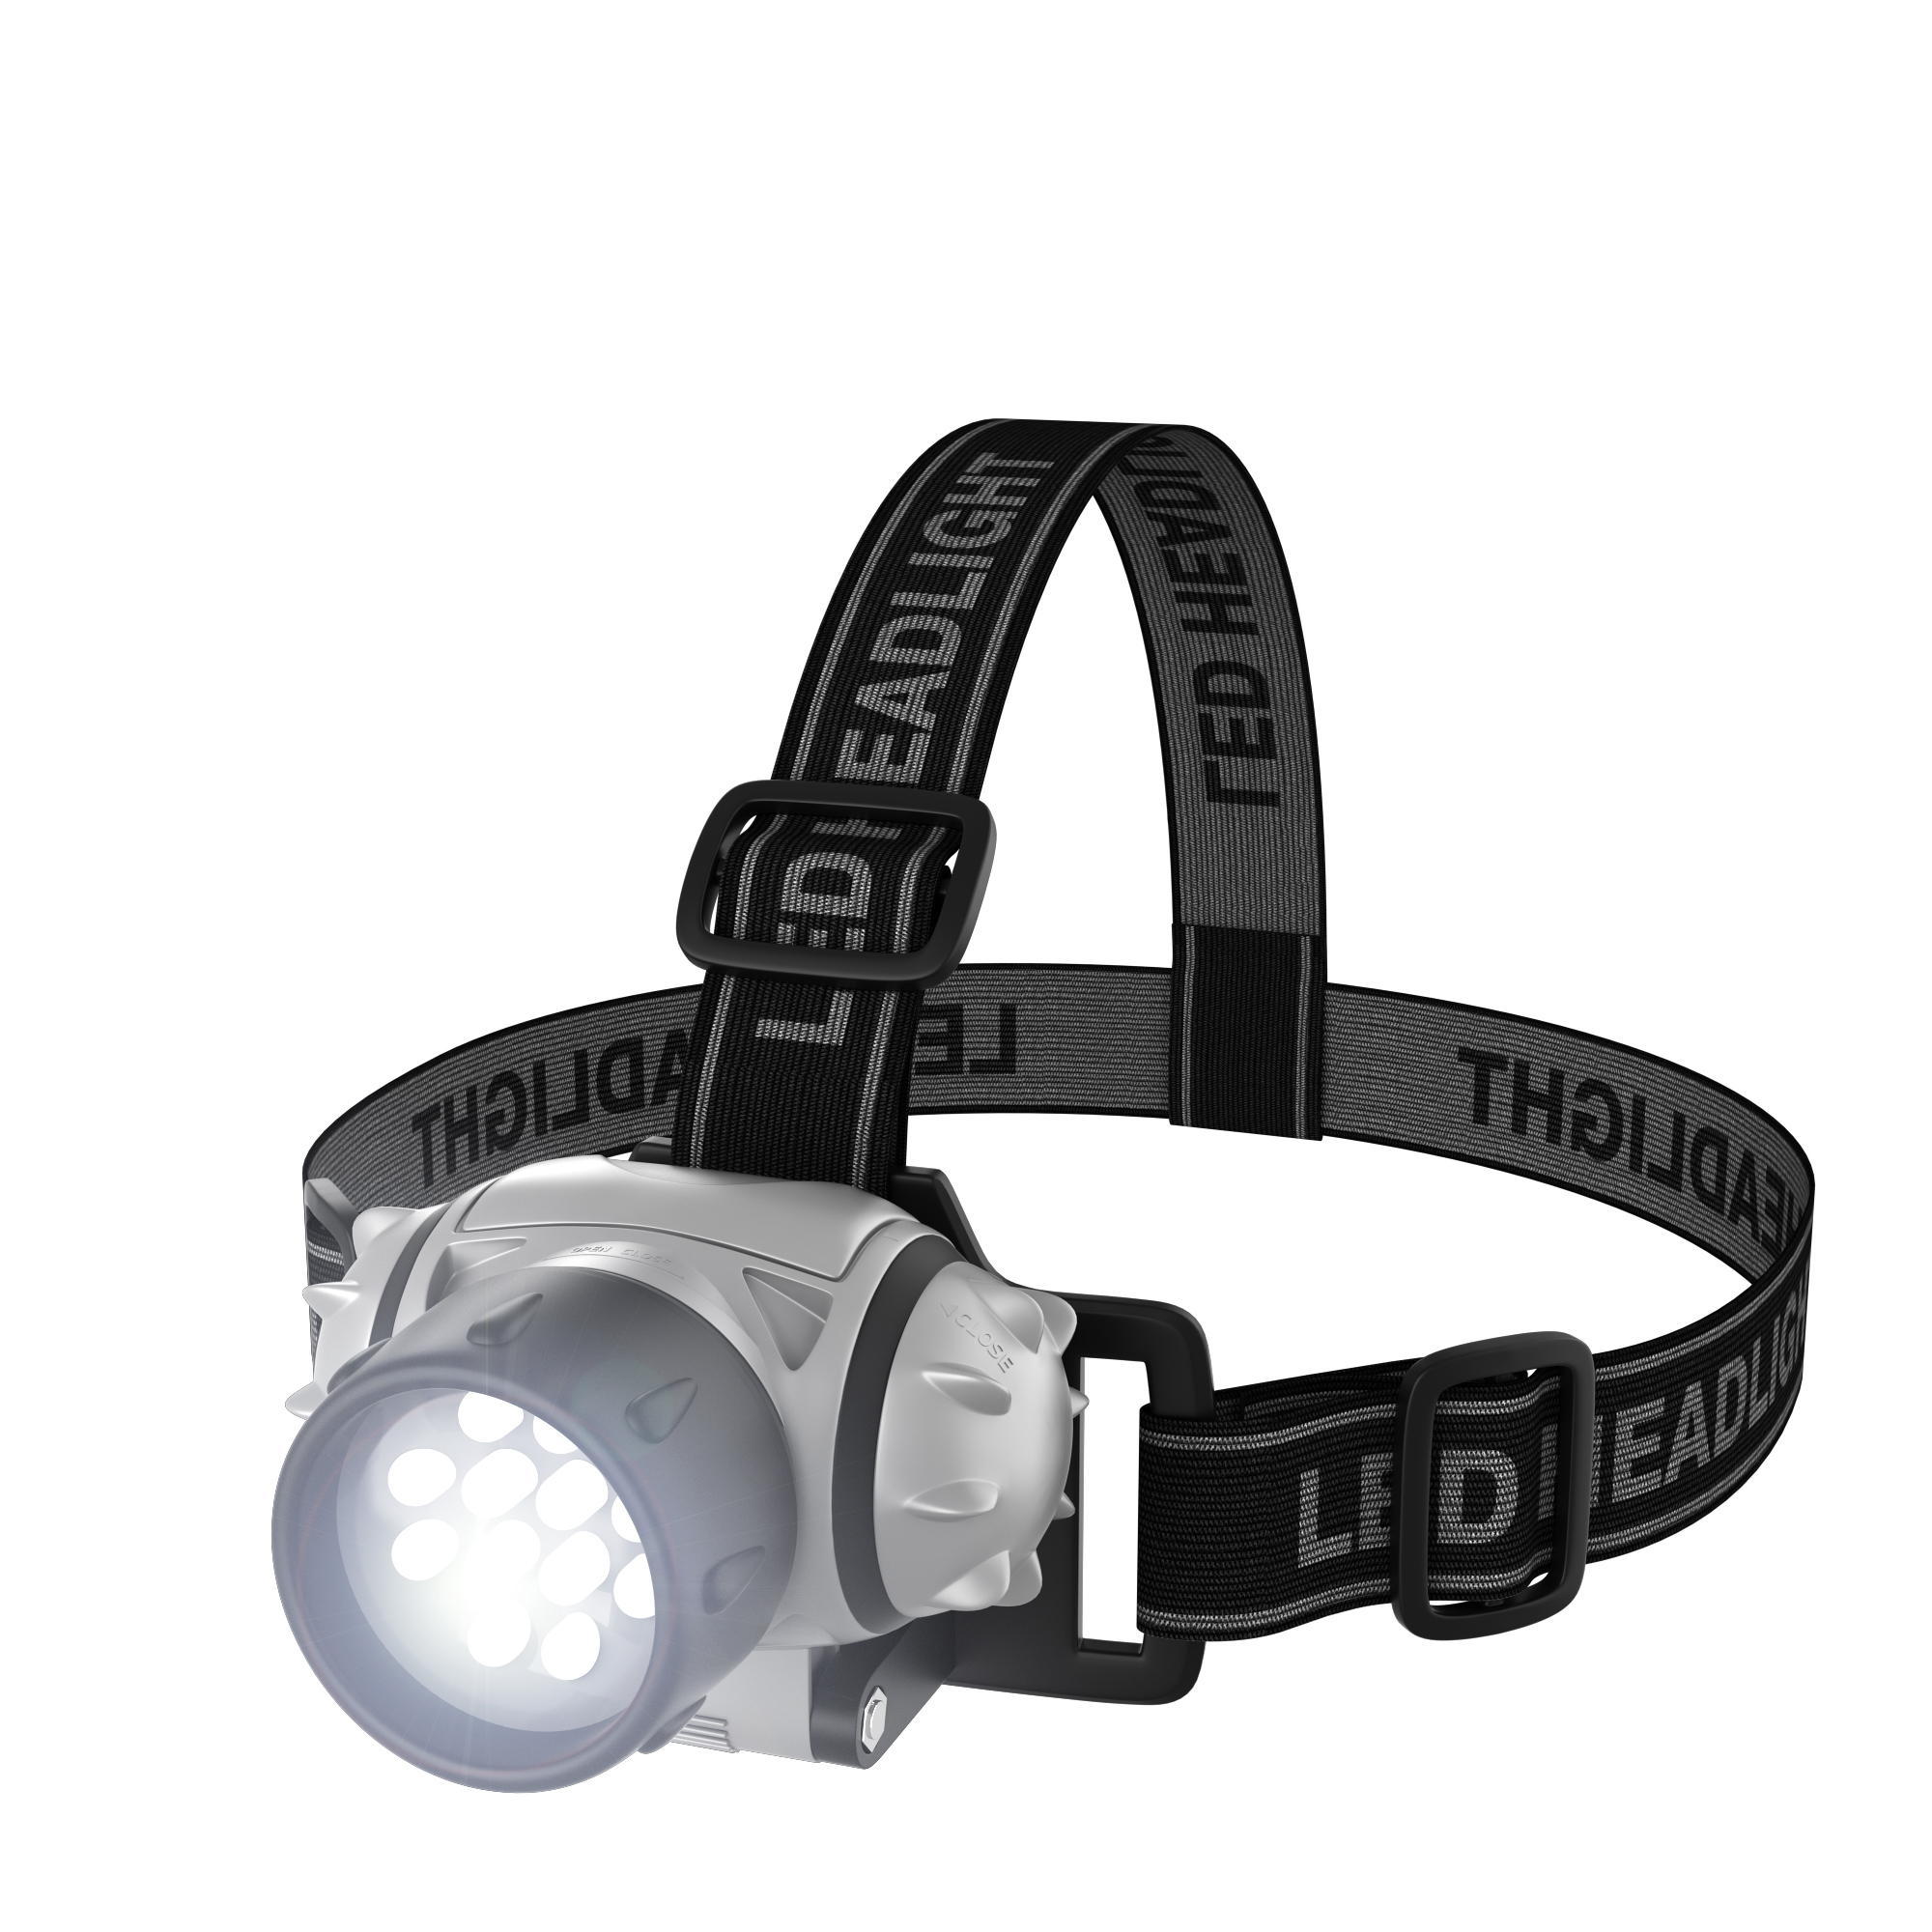 Stalwart 12 LED Headlamp with Adjustable Strap by TRADEMARK GAMES INC